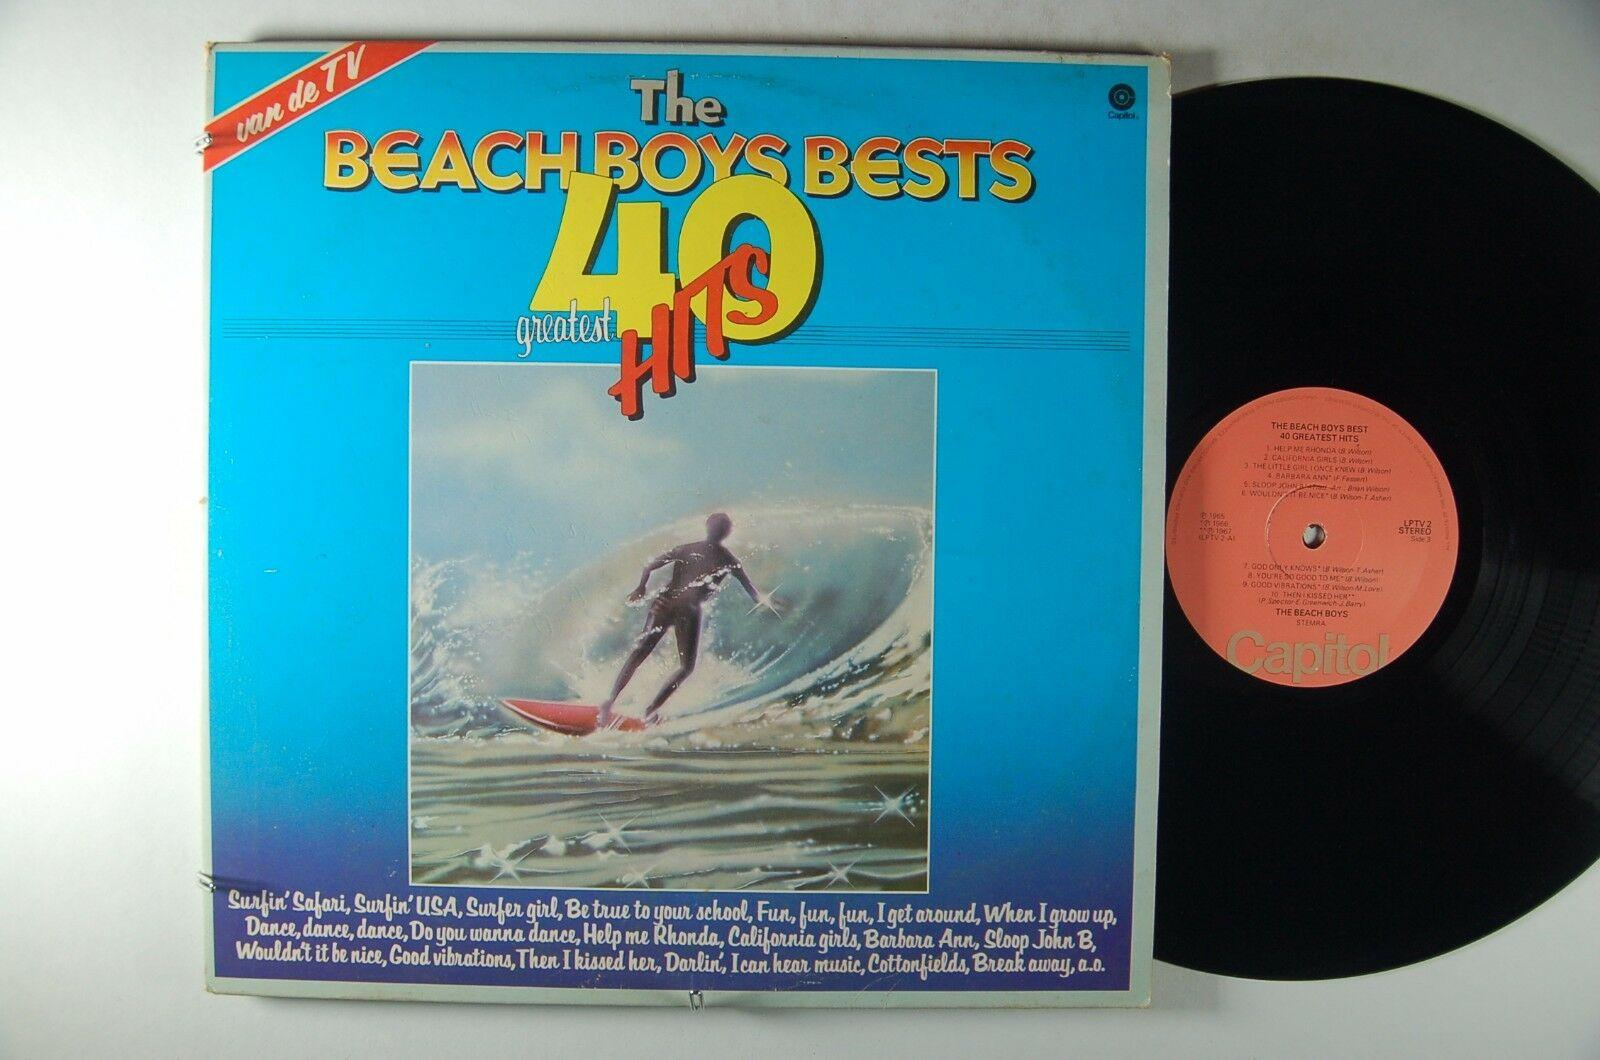 BEACH BOYS Best 40 Greatest Hits IMPORT 2xLP Dutch CAPITOL LPTV-2